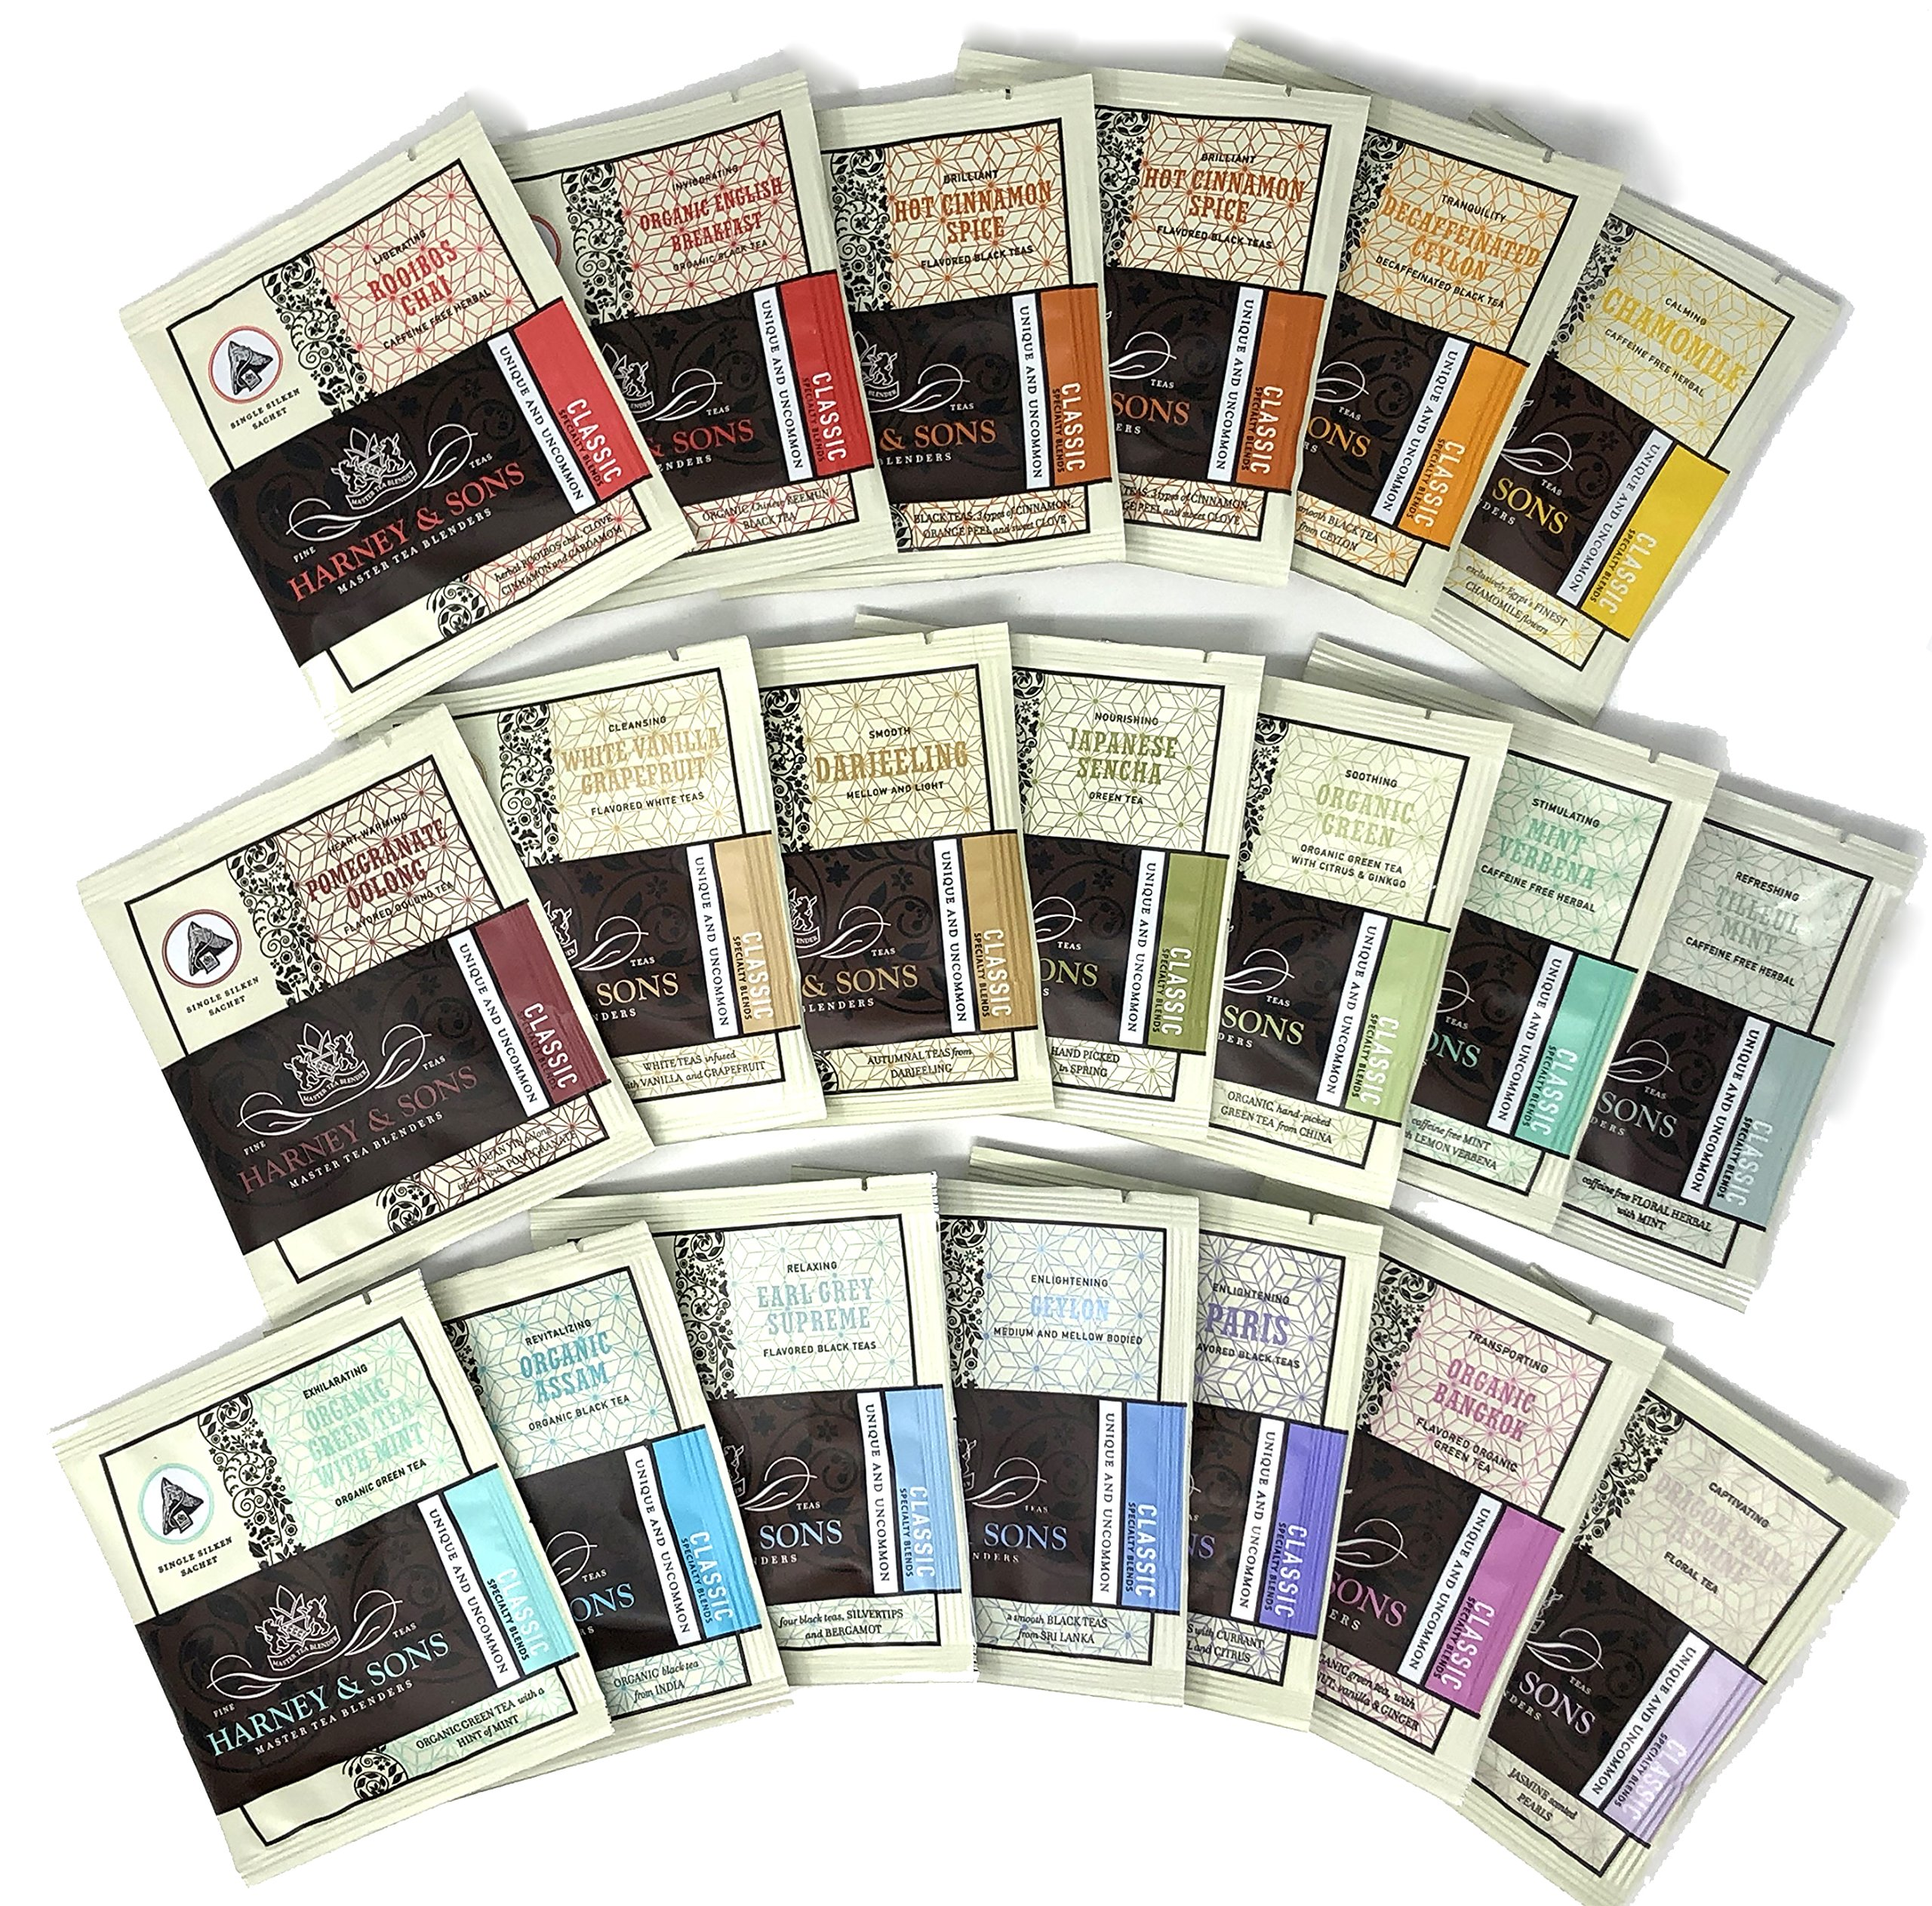 Harney & Sons Tea Gift Box Assorted Classic Tea Sachet Sampler 20 Count (19 Different Flavors) with Tea Time Card - Great for Birthday, Hostess and Co-worker Gifts